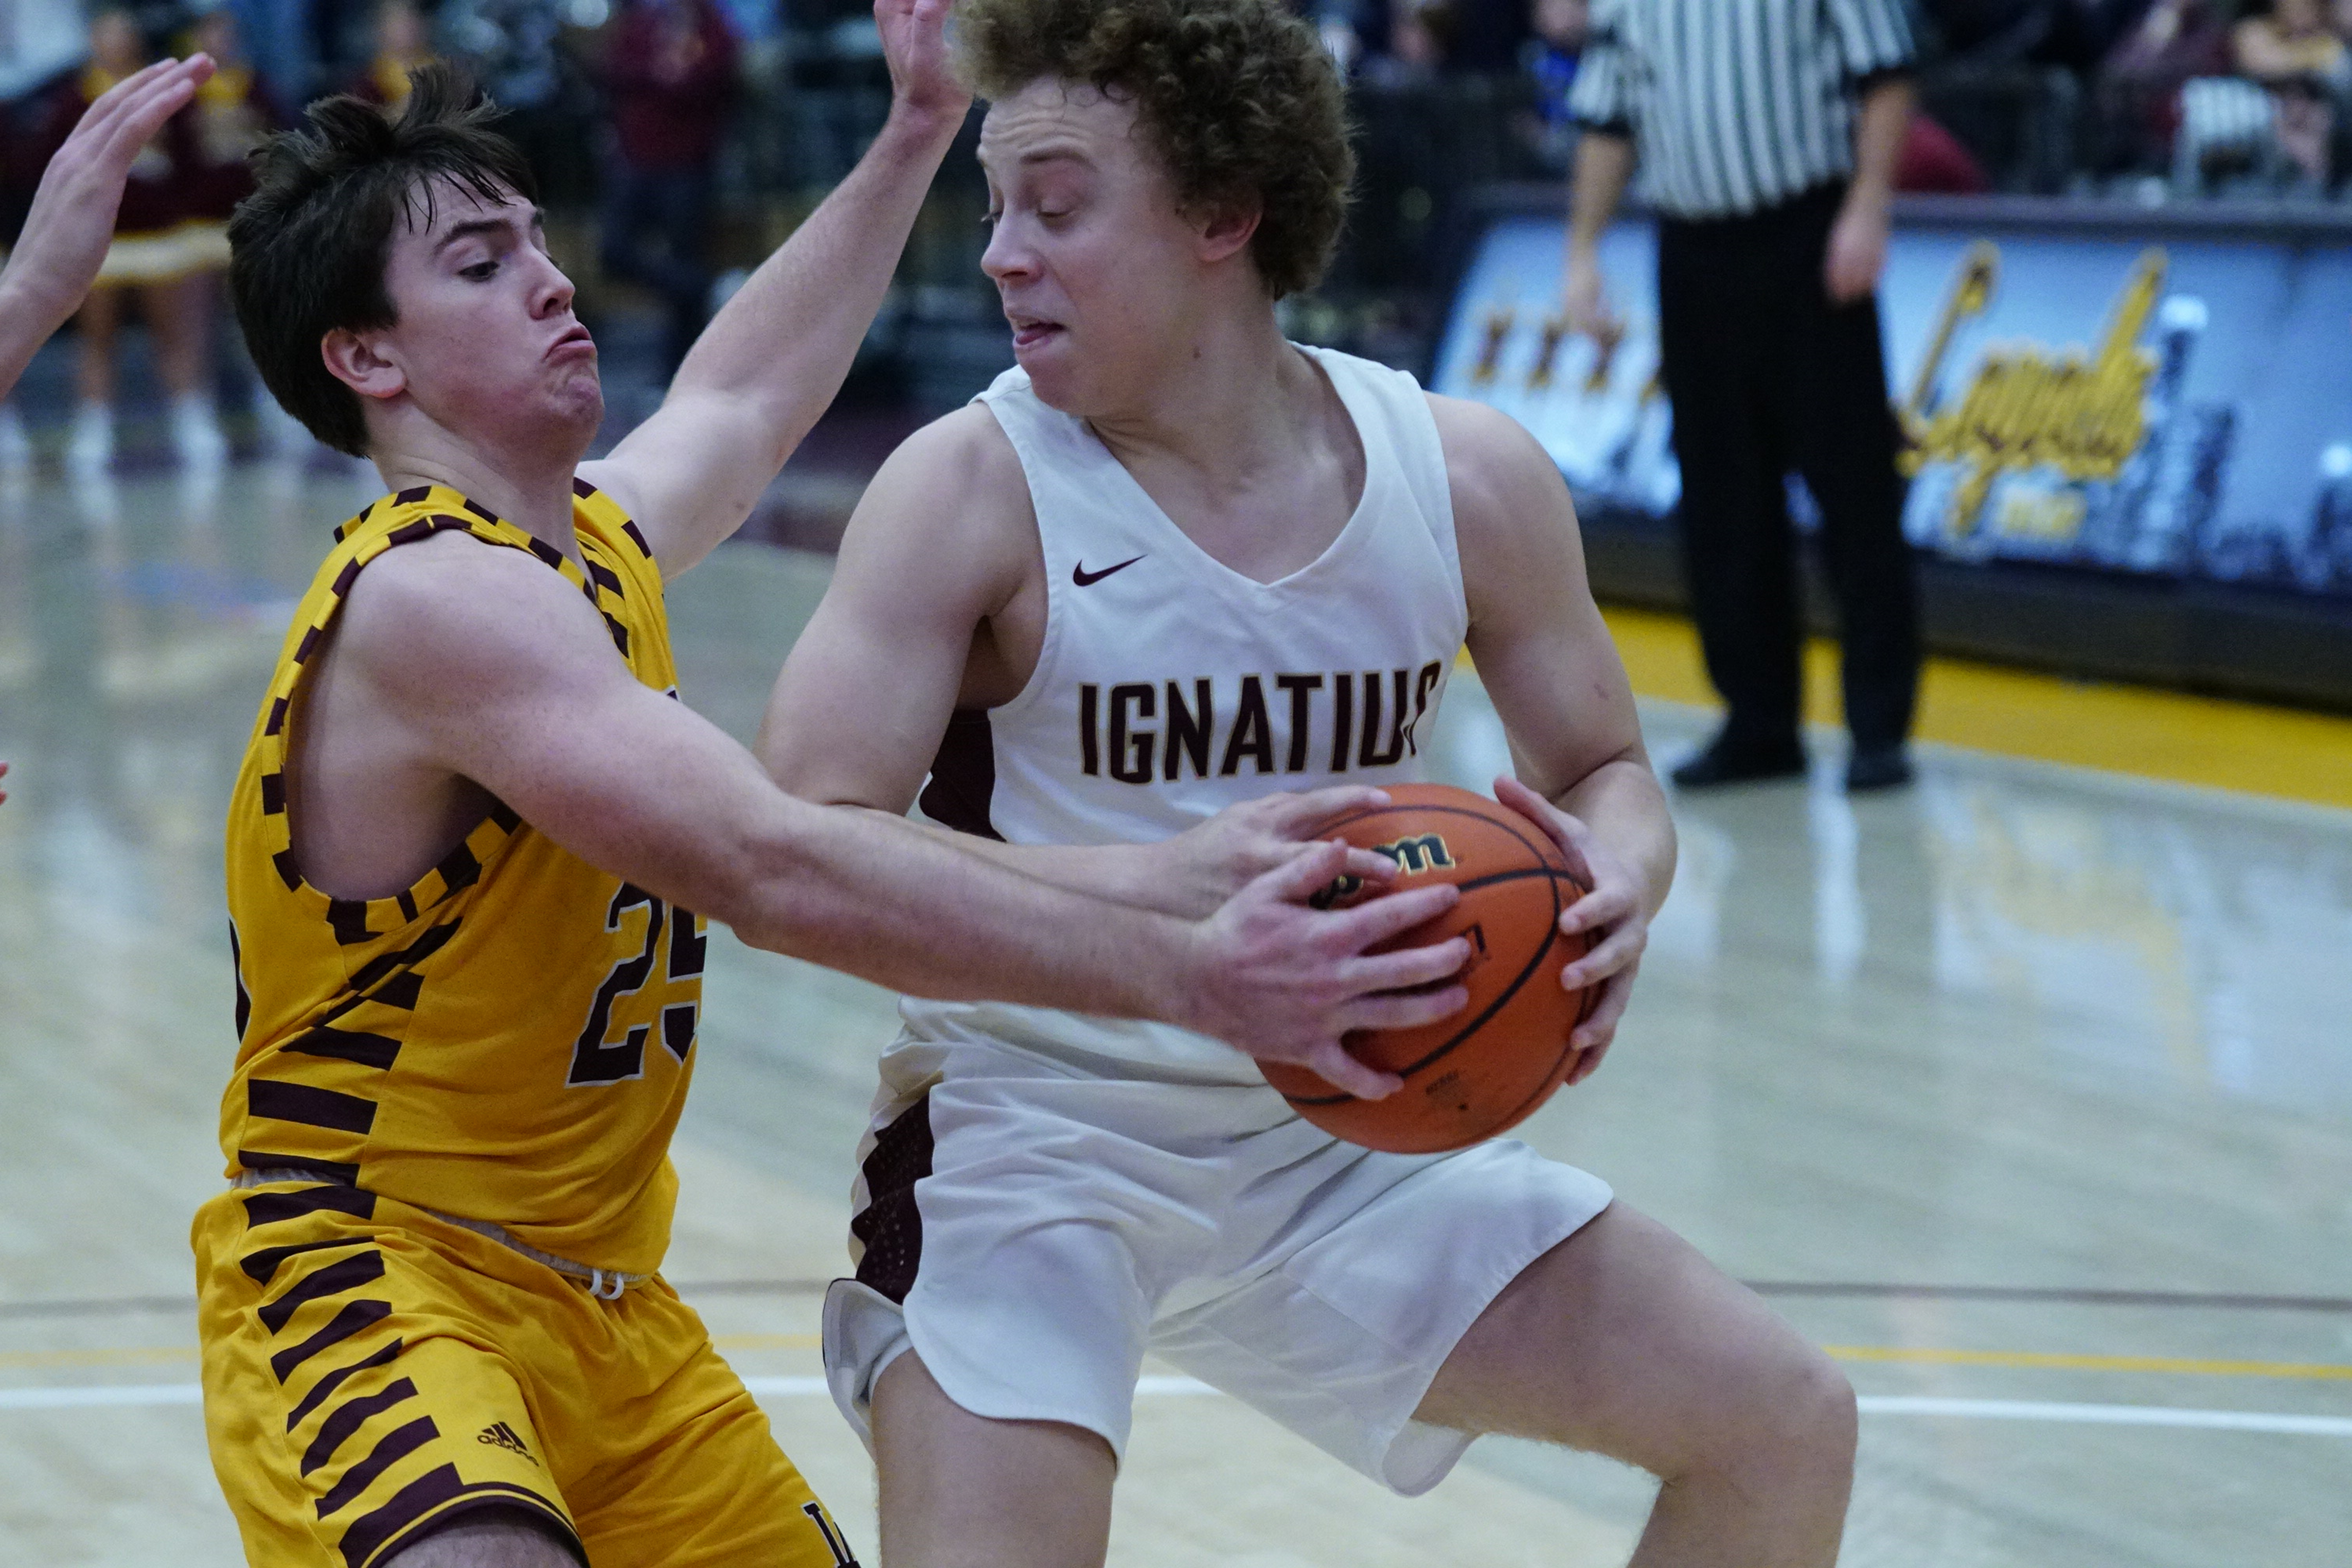 Loyola's Billy Palmer (25) swipes the ball away from Parker Higginbottom of St. Ignatius.